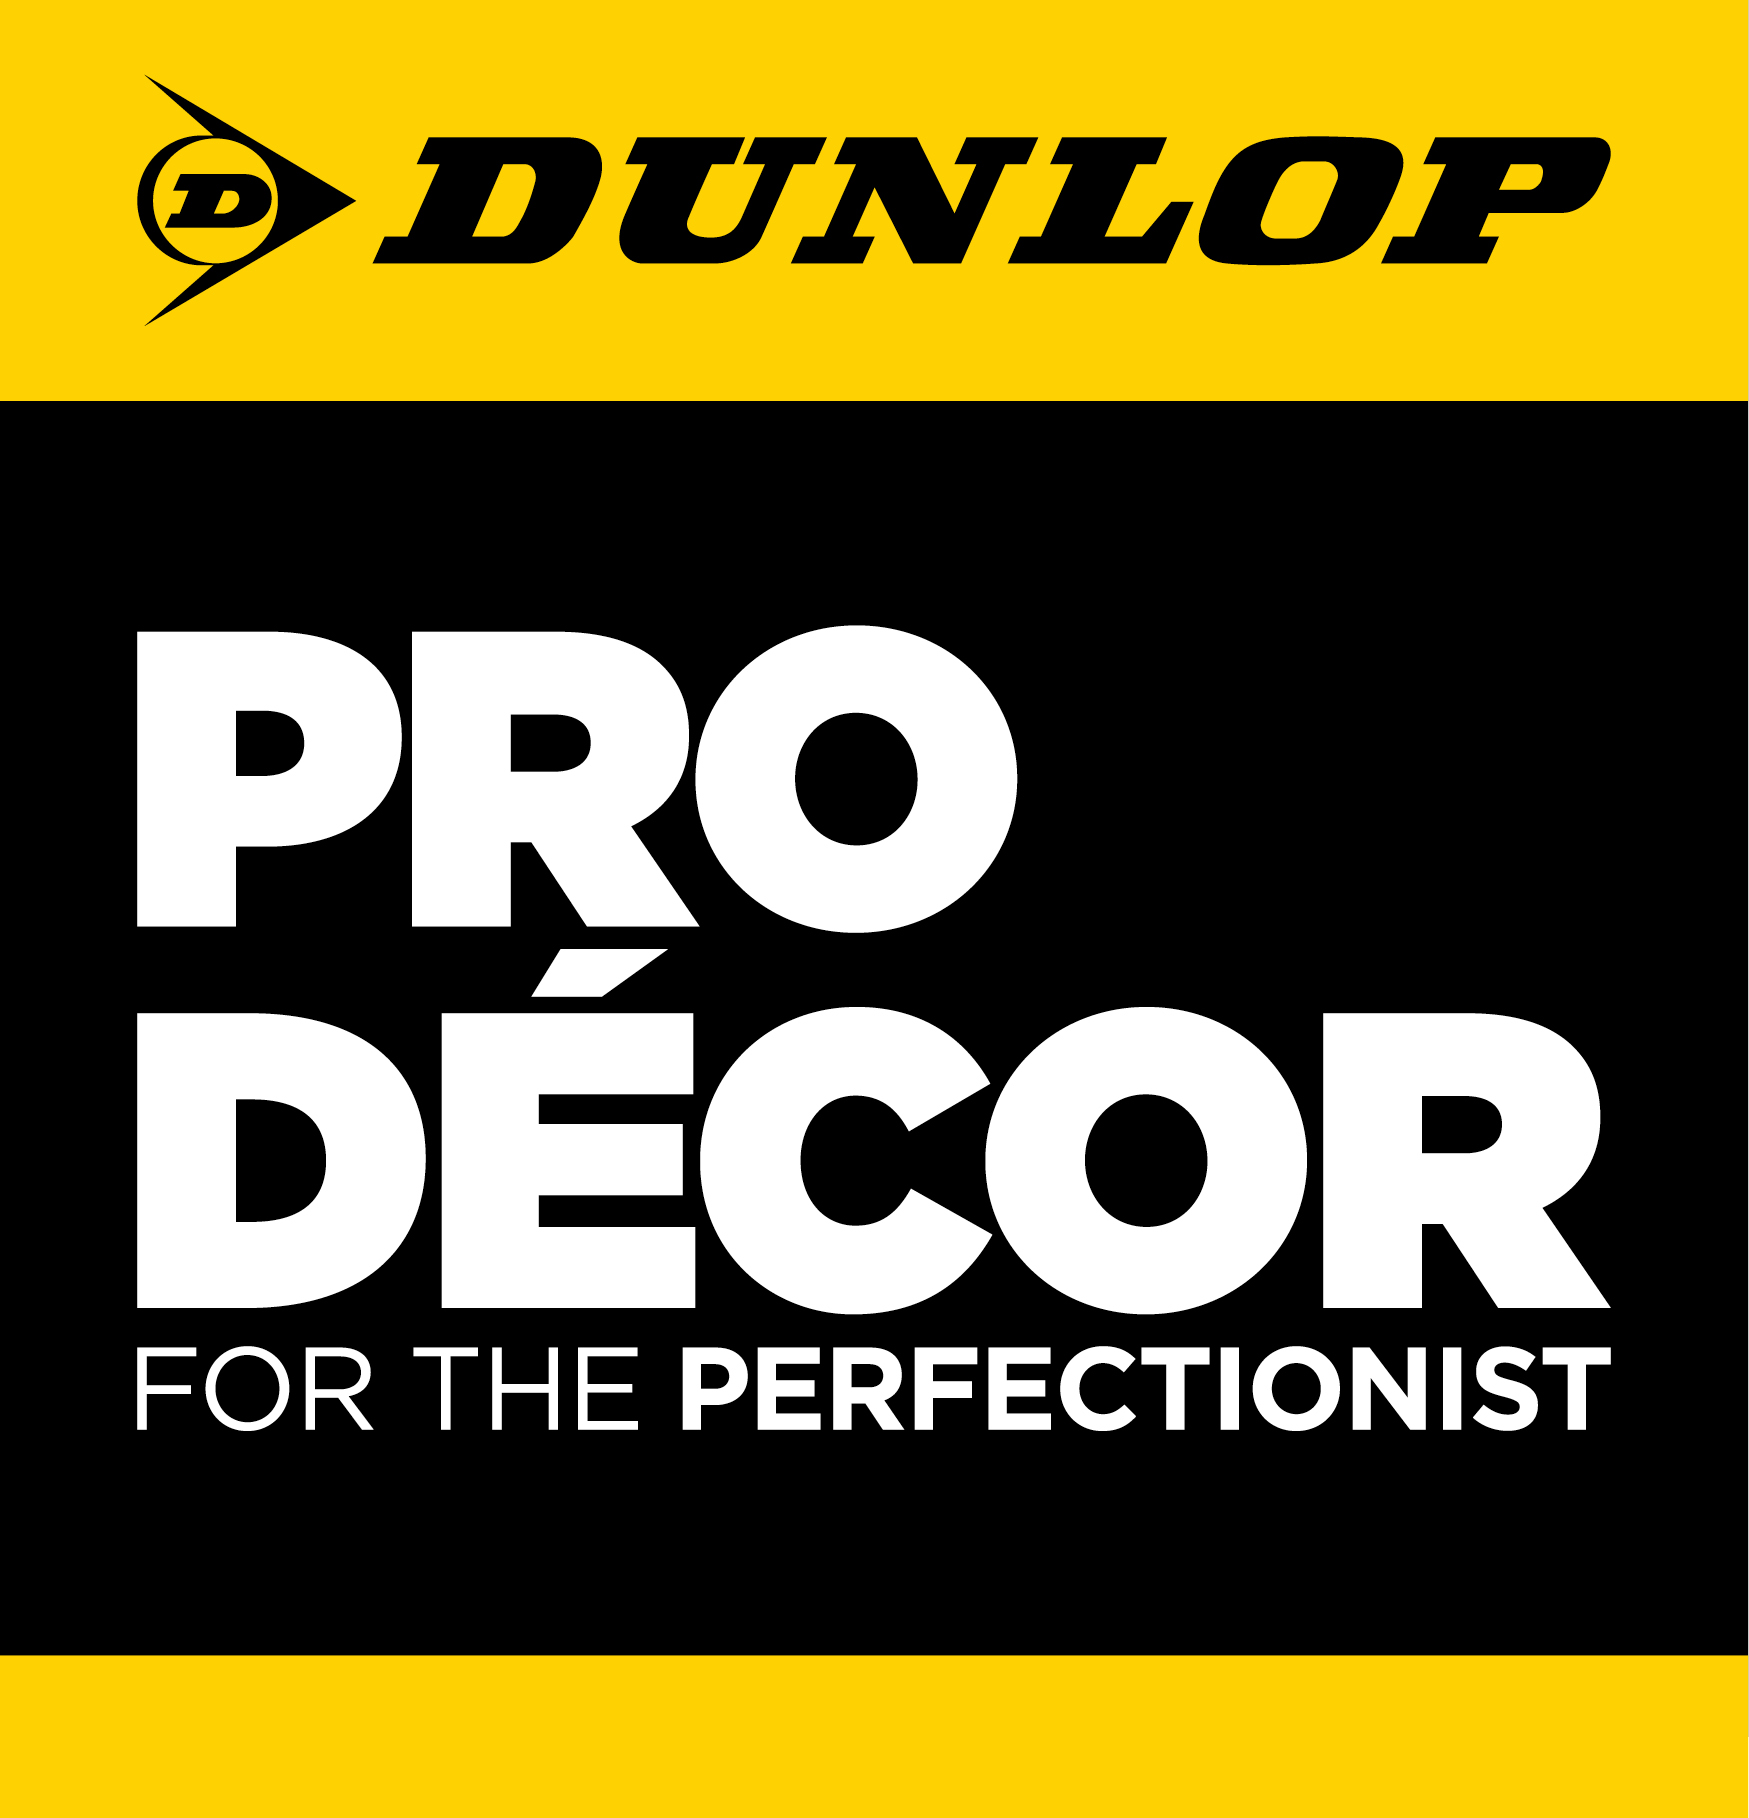 Dunlop is an associate member of the Painting and Decorating Association